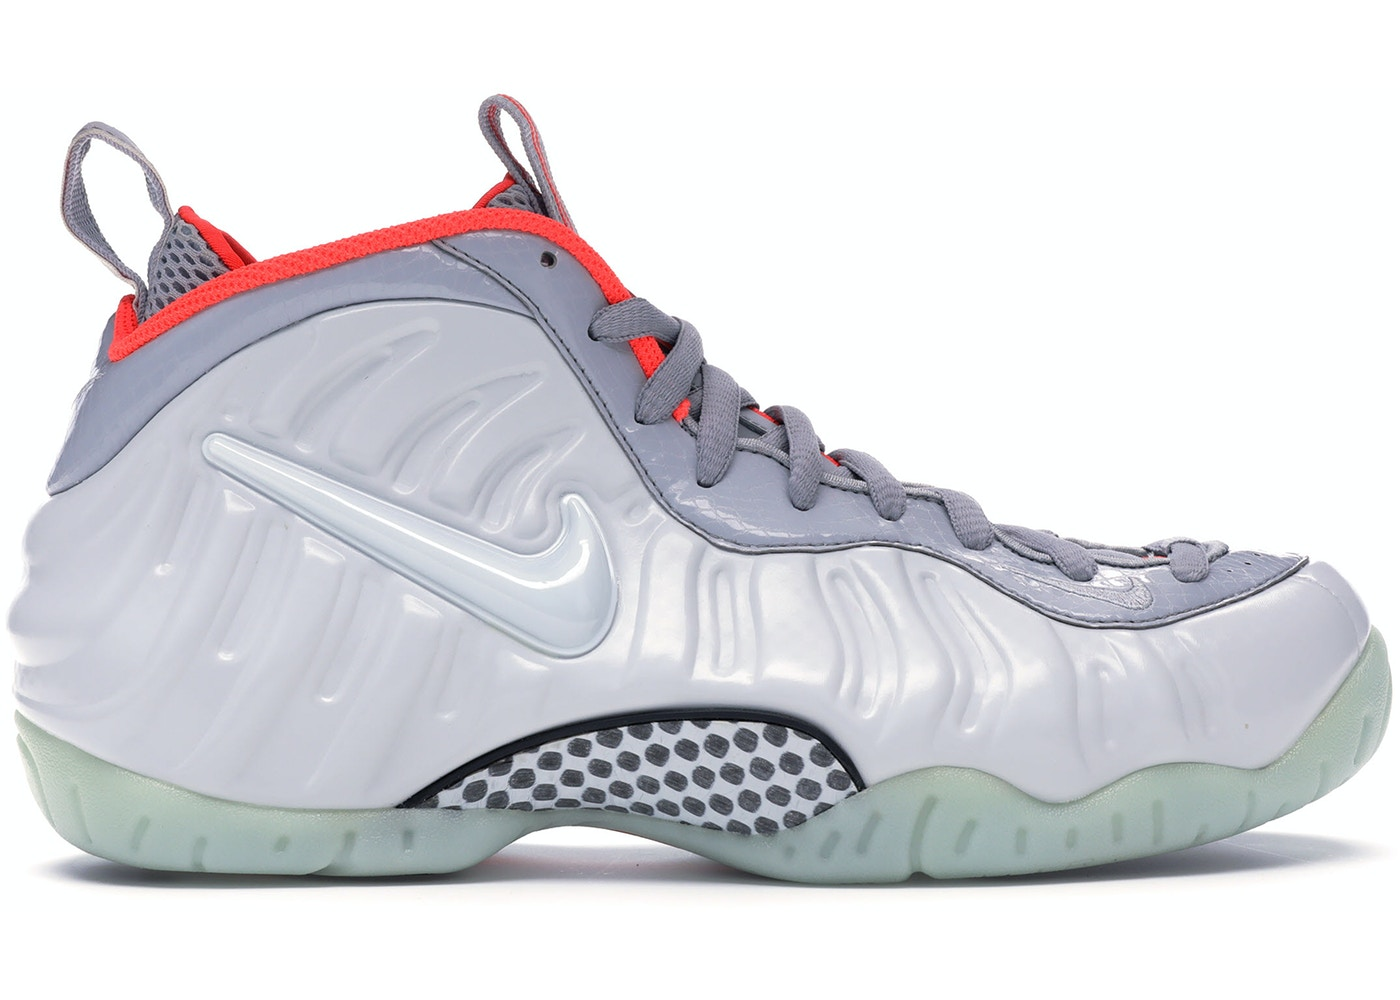 ae7115d3993 Air Foamposite Pro Pure Platinum - 616750-003